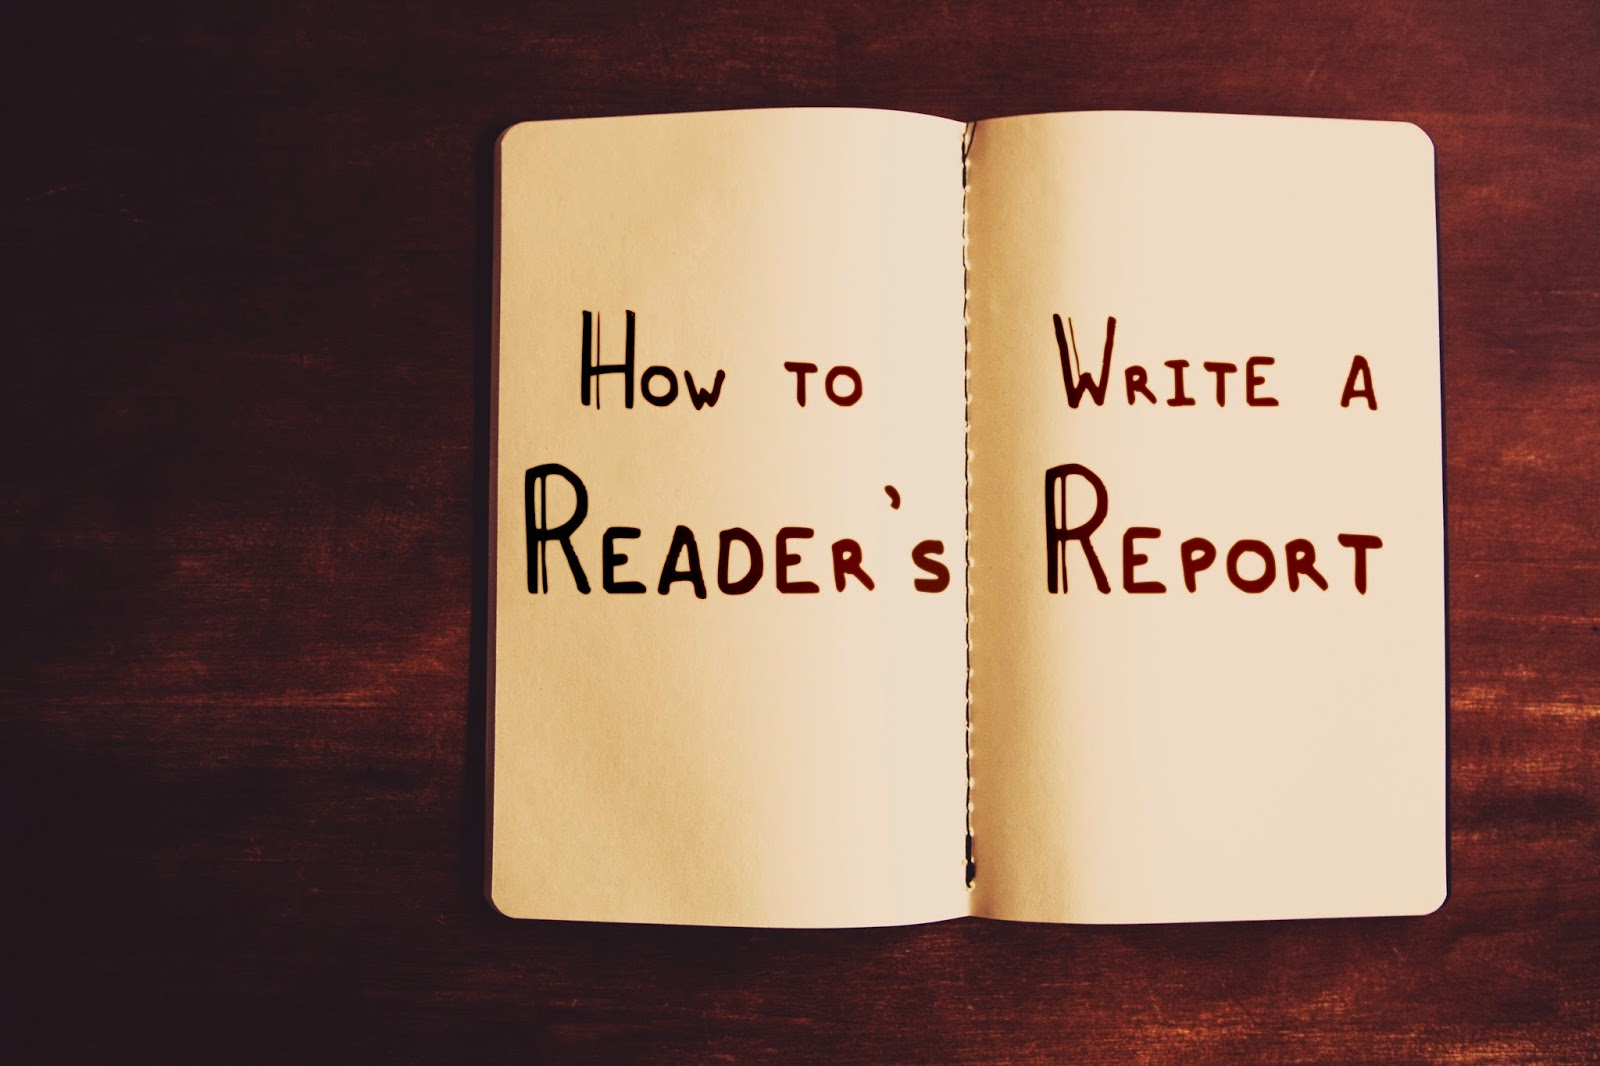 DuoDiaries: How to Write a Reader's Report